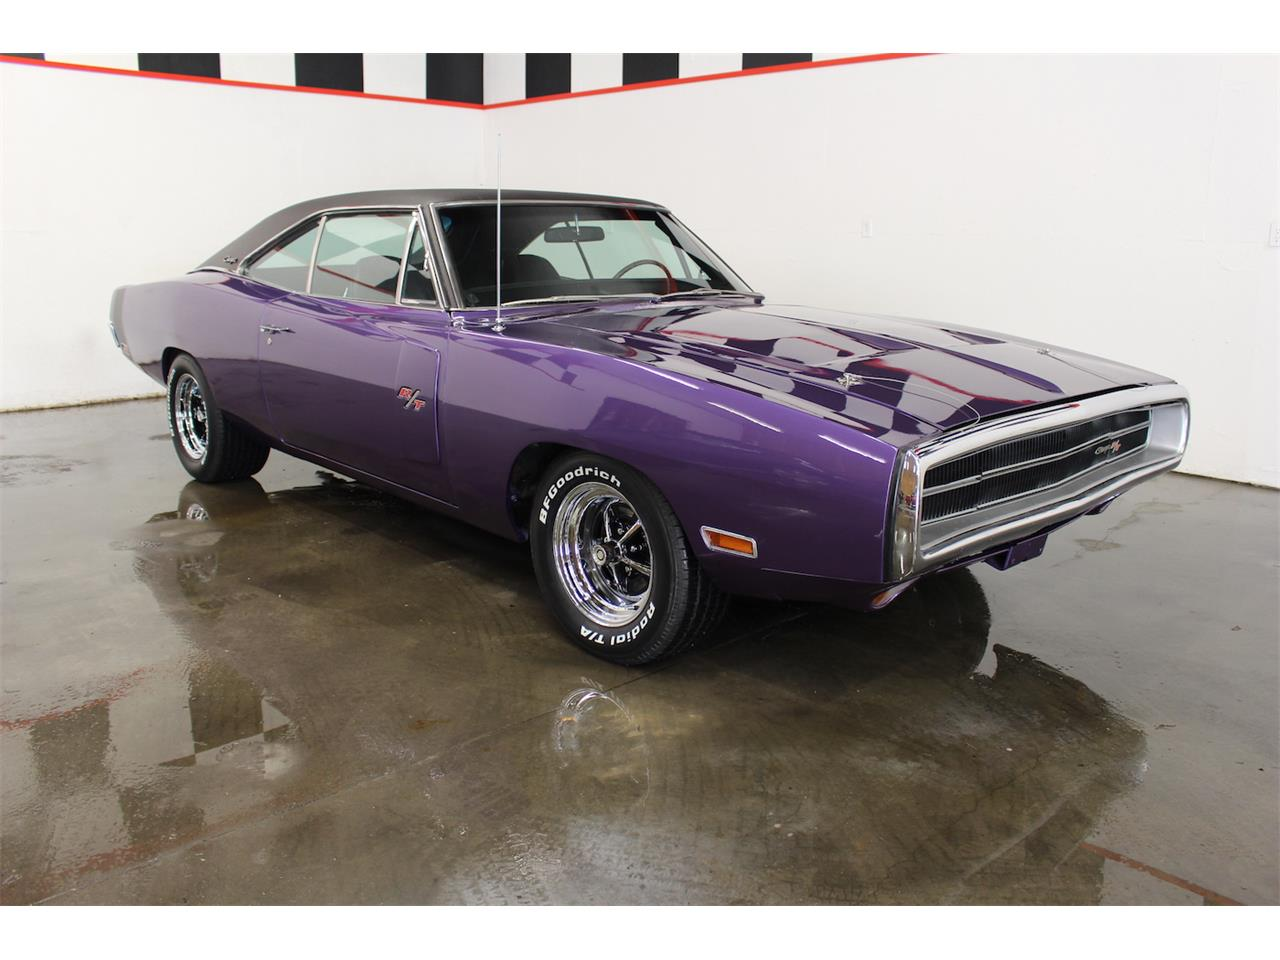 1970 Dodge Charger For Sale Classiccars Com Cc 1141033